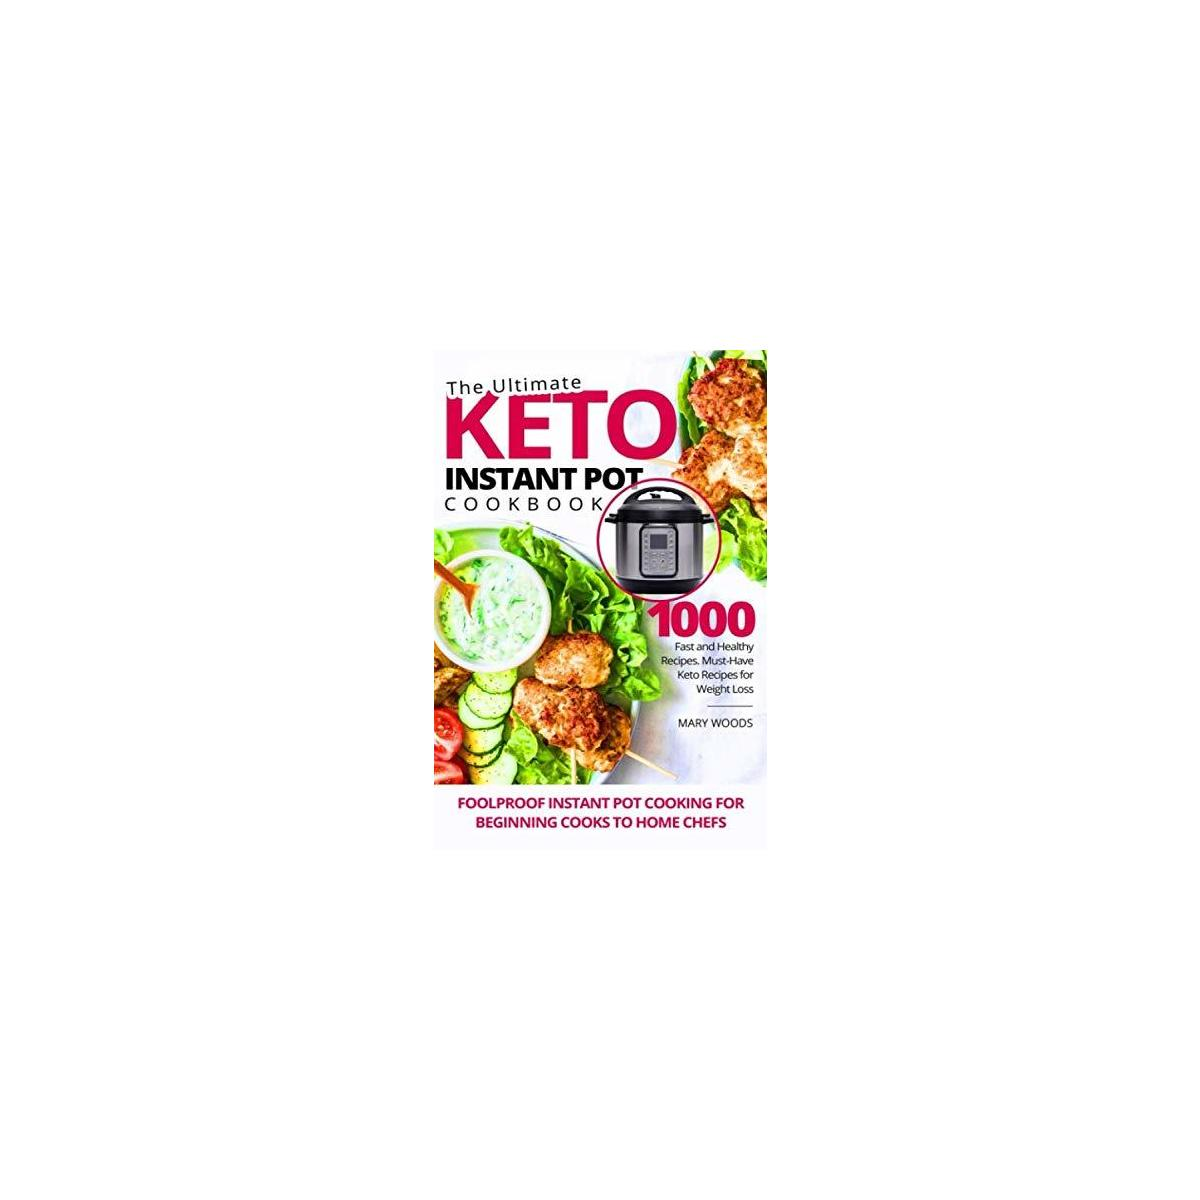 The Ultimate Keto Instant Pot Cookbook: 1000 Fast and Healthy Recipes. Must-Have Keto Recipes for Weight Loss. Foolproof Instant Pot cooking for beginning cooks to home chefs